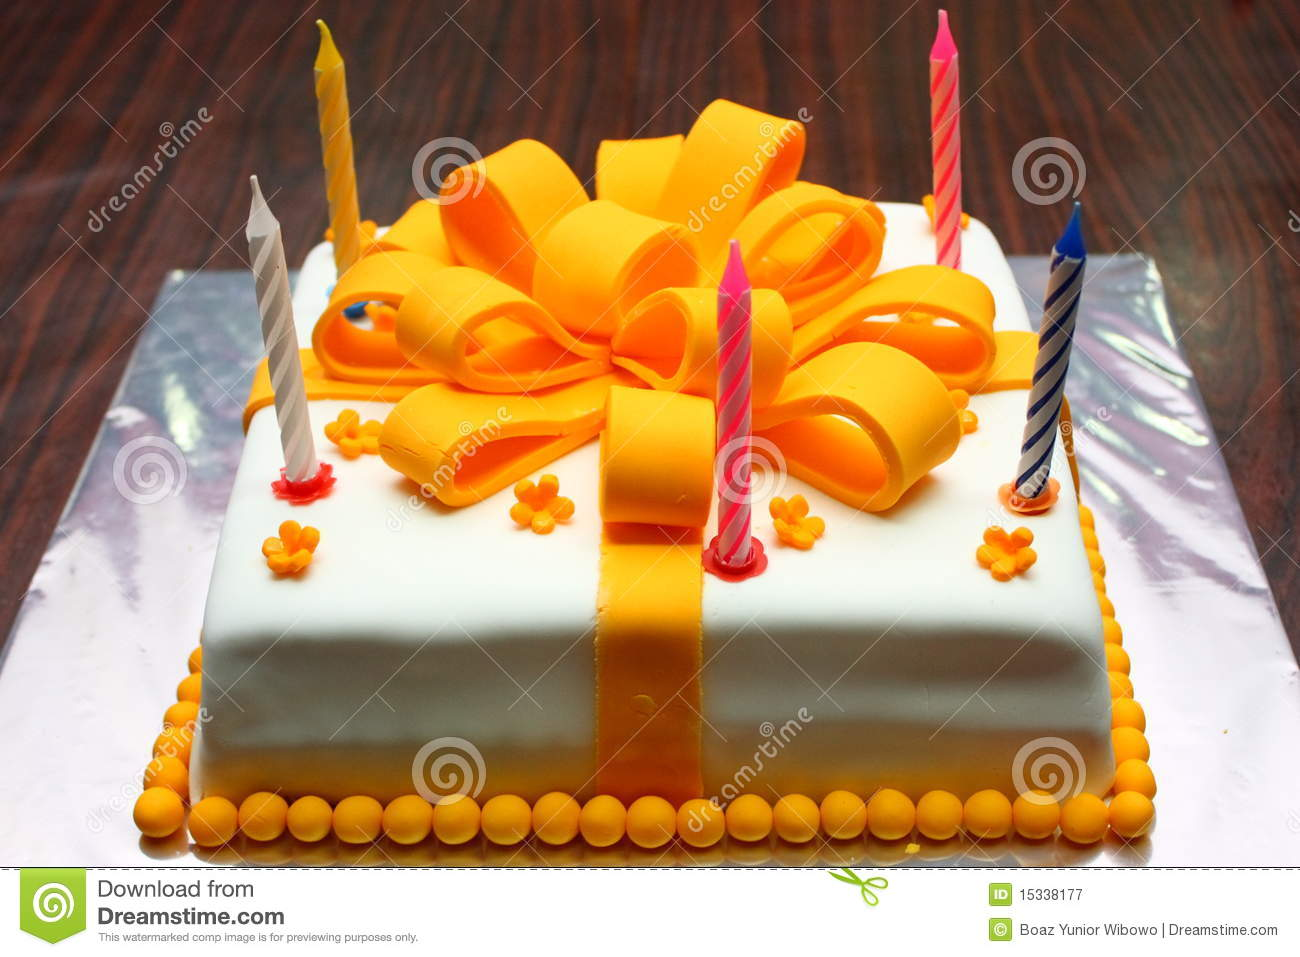 Birthday Cake Stock Image Image Of Confection Frosting 15338177